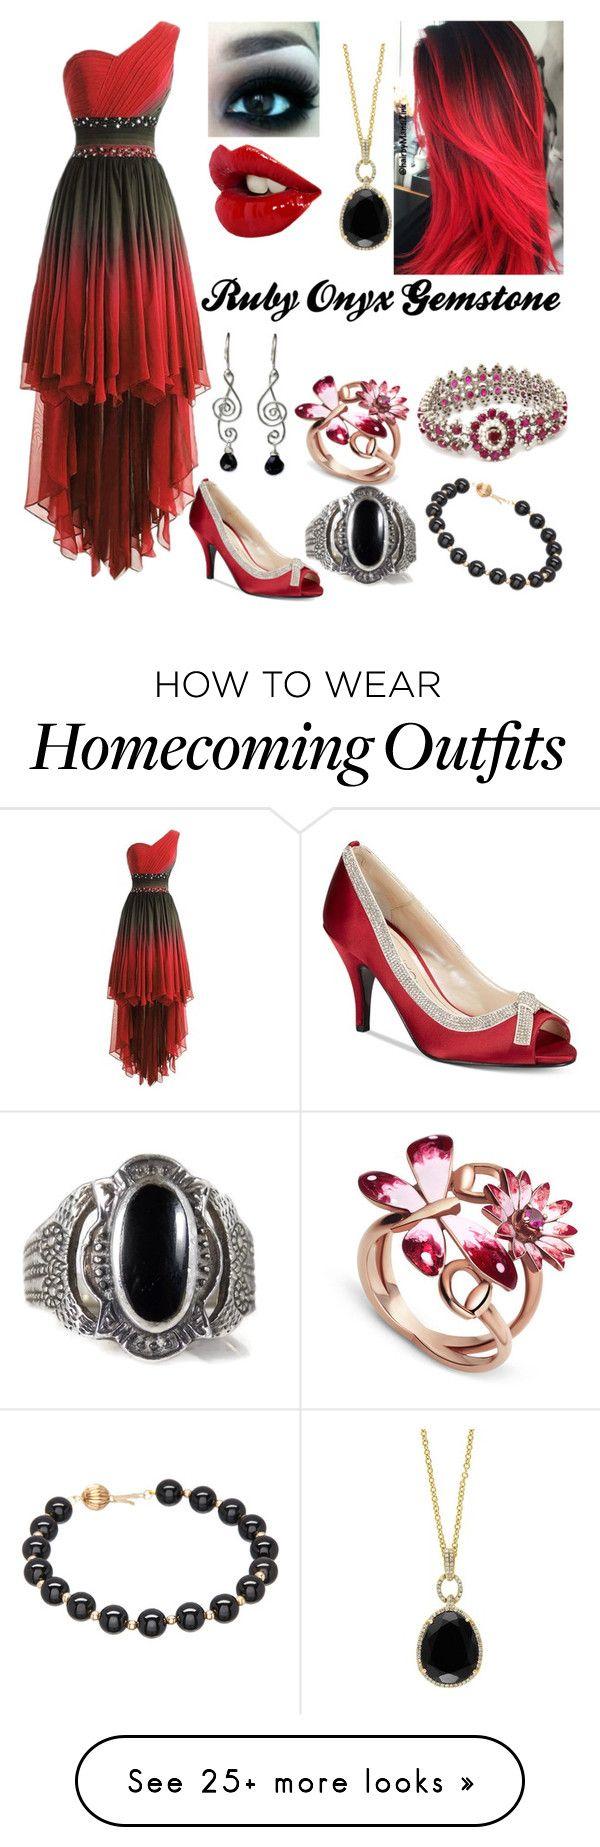 """Ry"" by darkdragon42 on Polyvore featuring Gucci, Caparros, NOVICA and Effy Jewelry"